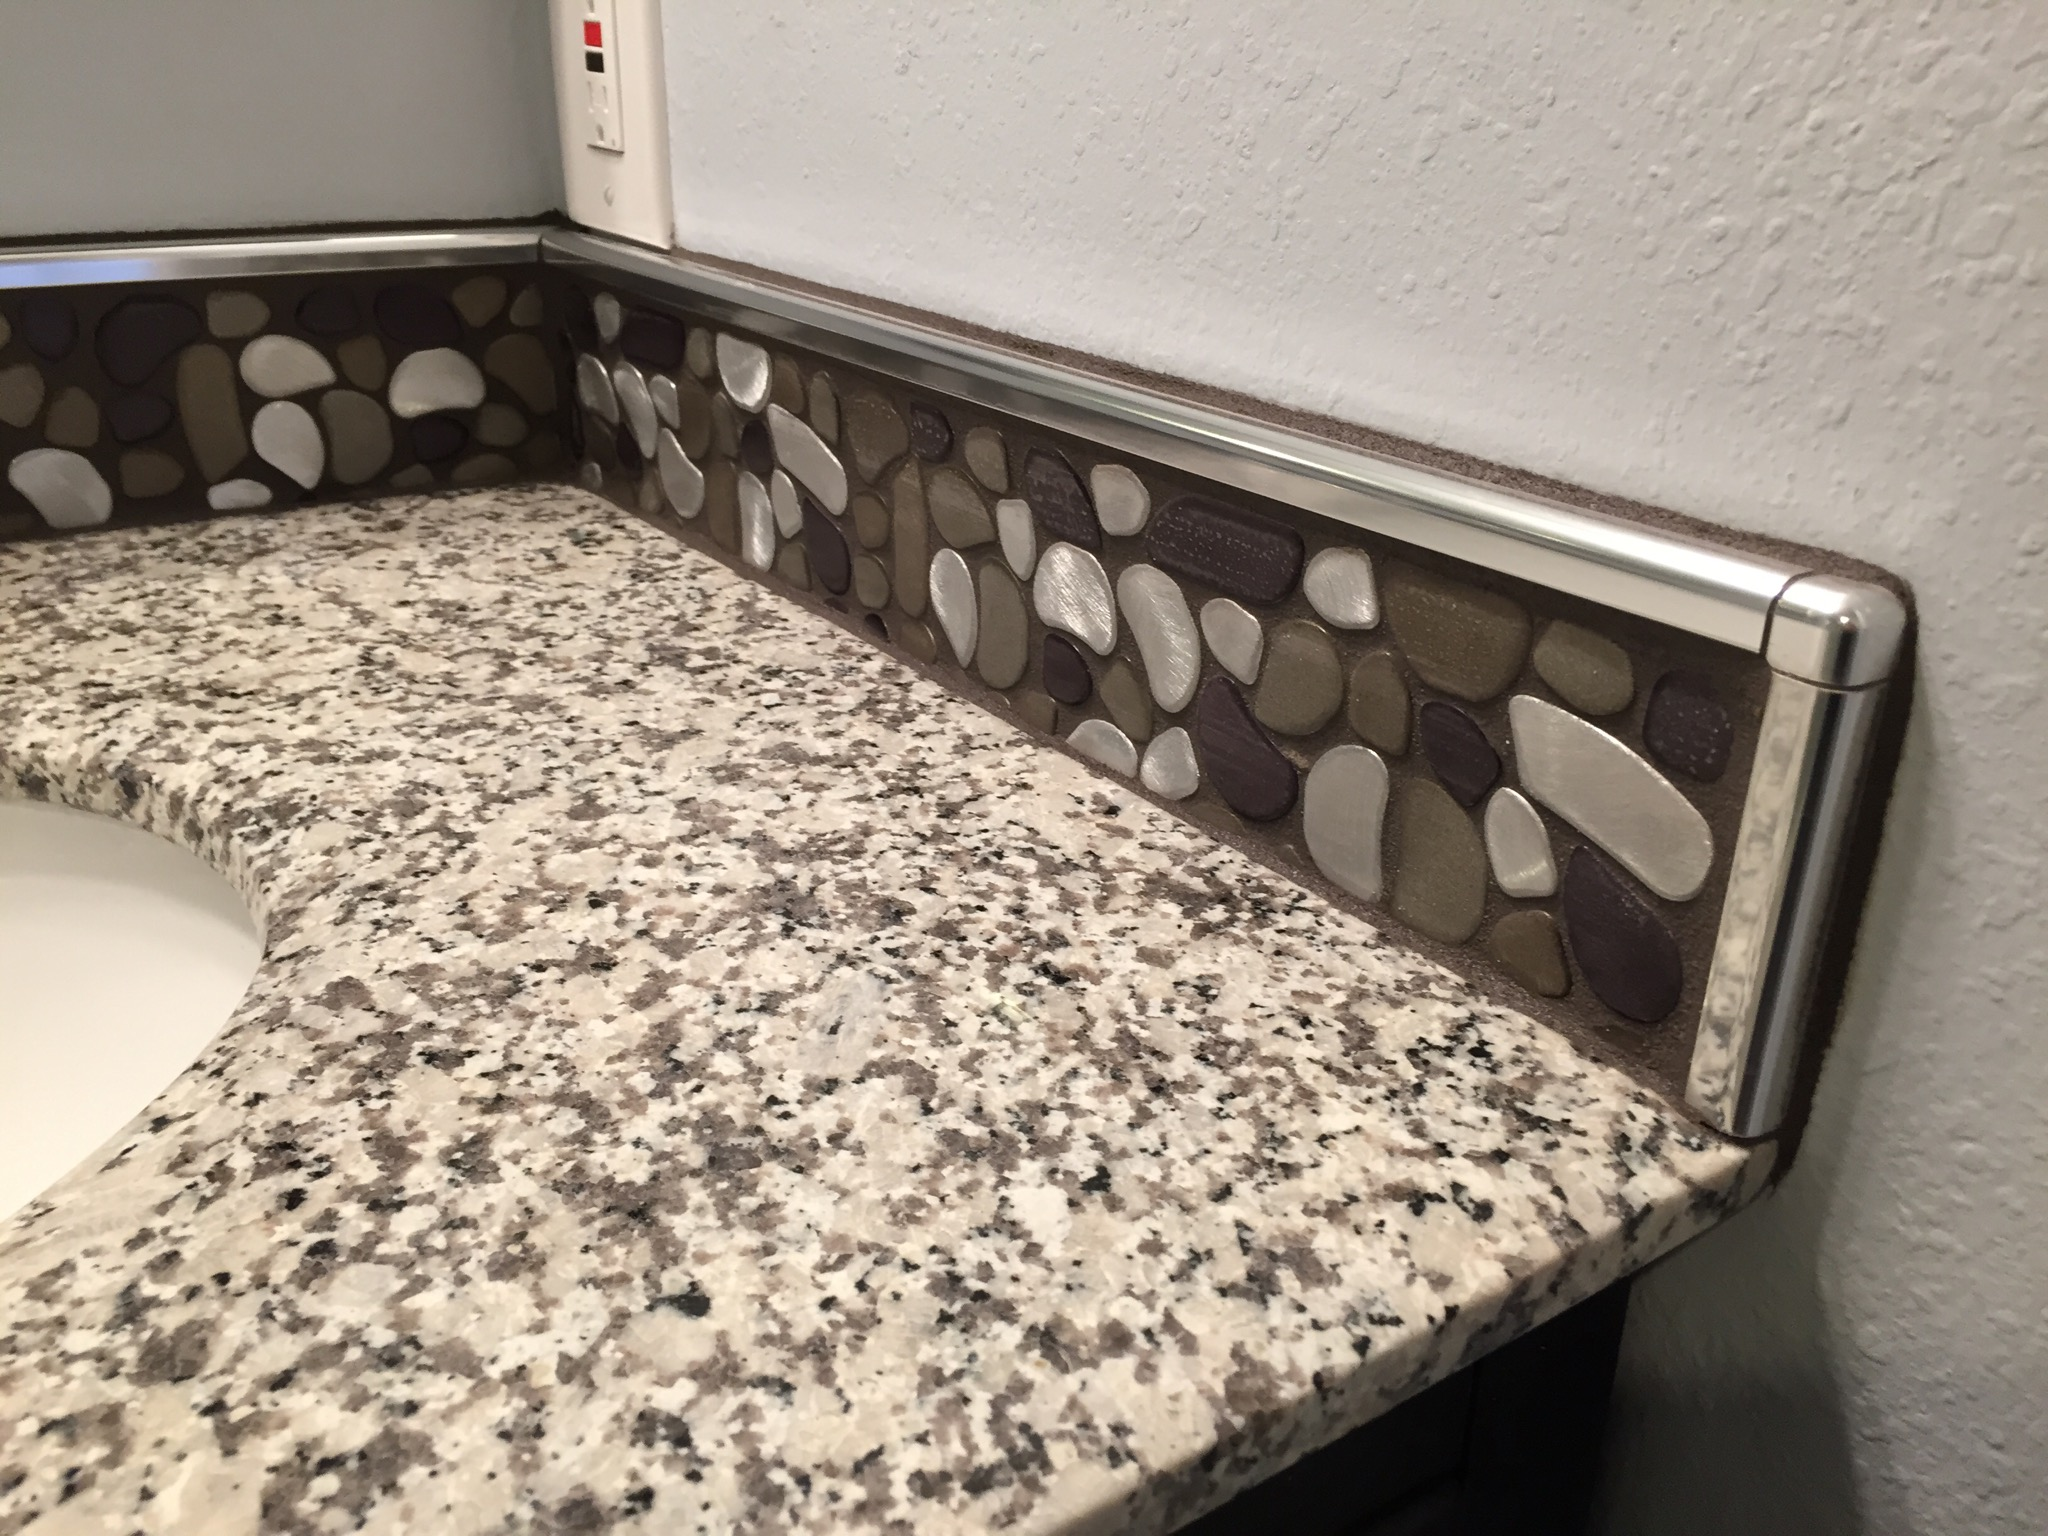 Aluminum Flat Pebble Bathroom Backsplash Clearwater